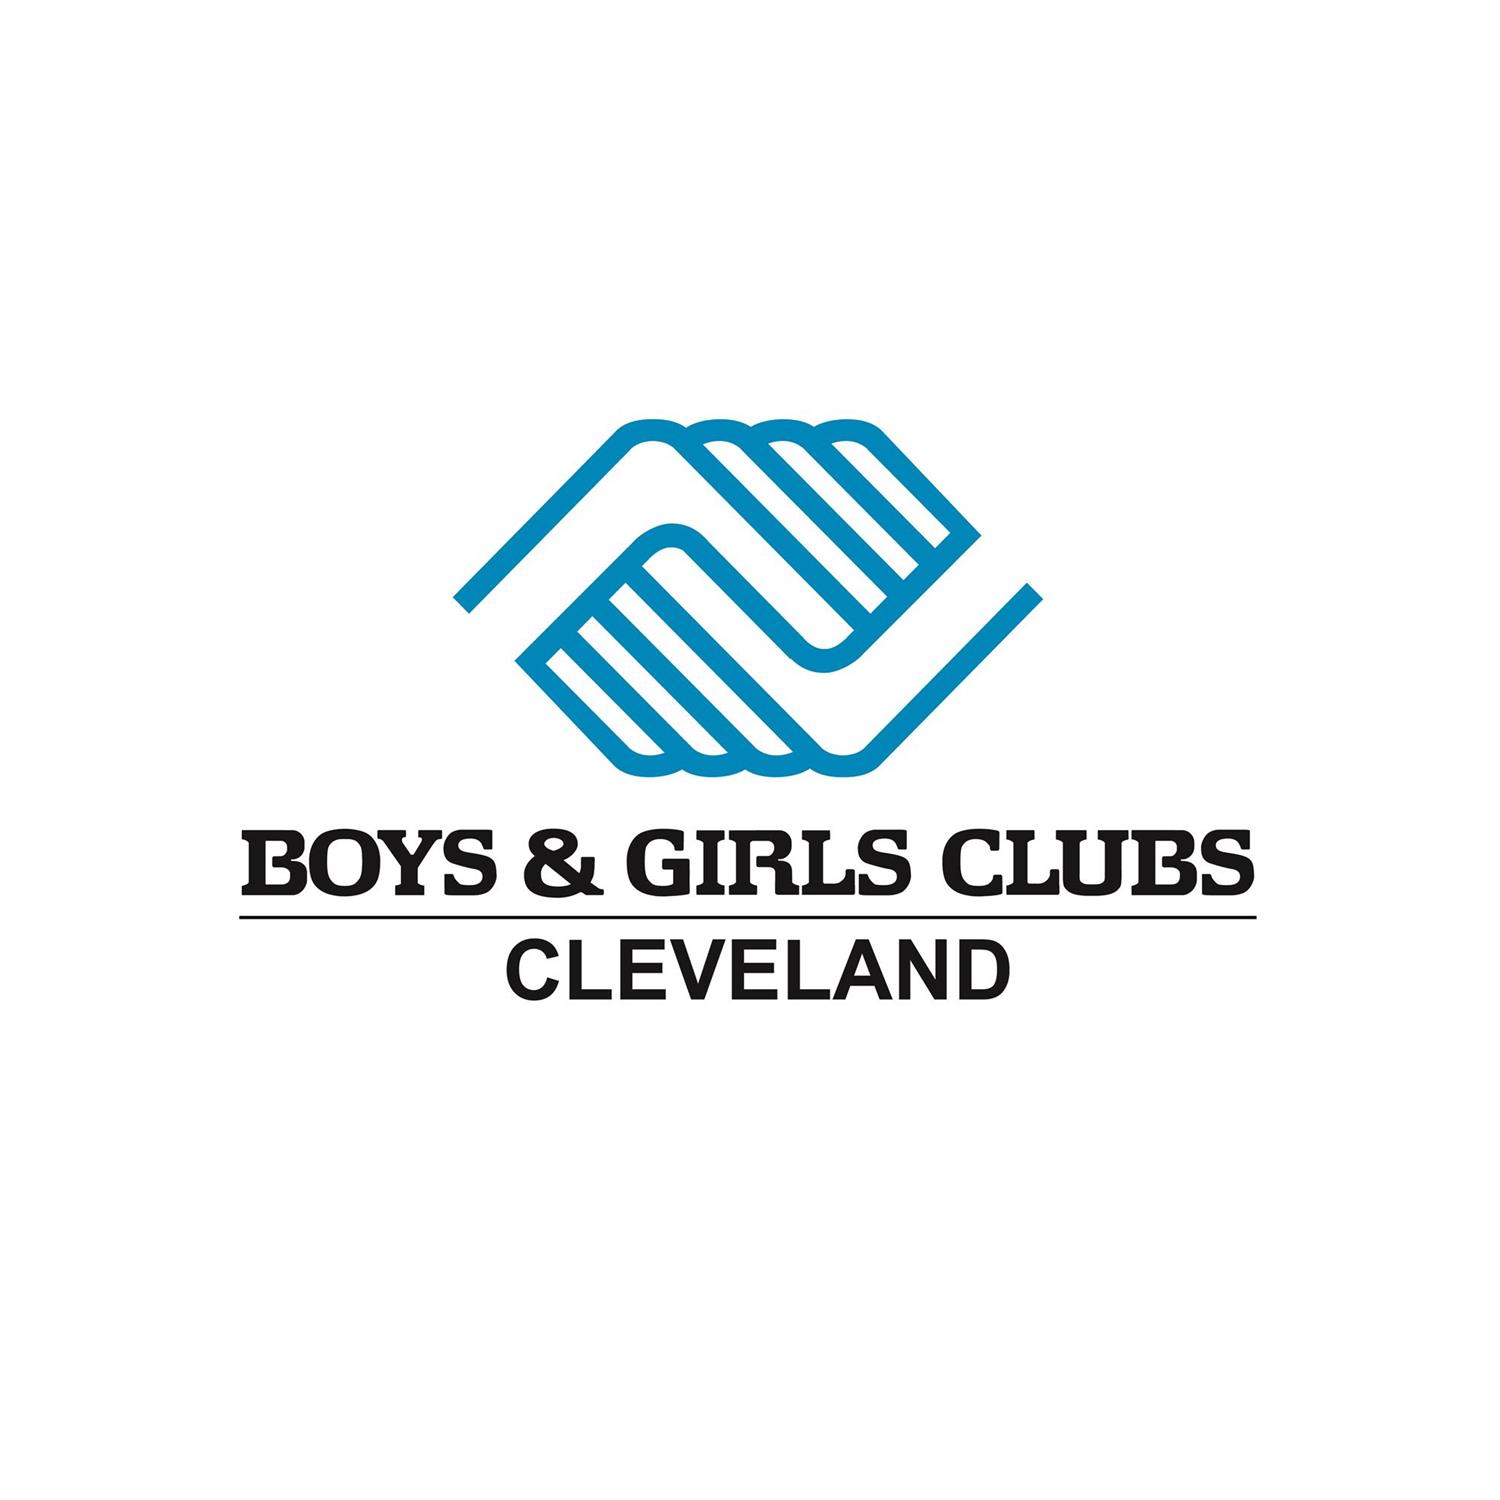 Boys and Girls Clubs of Cleveland